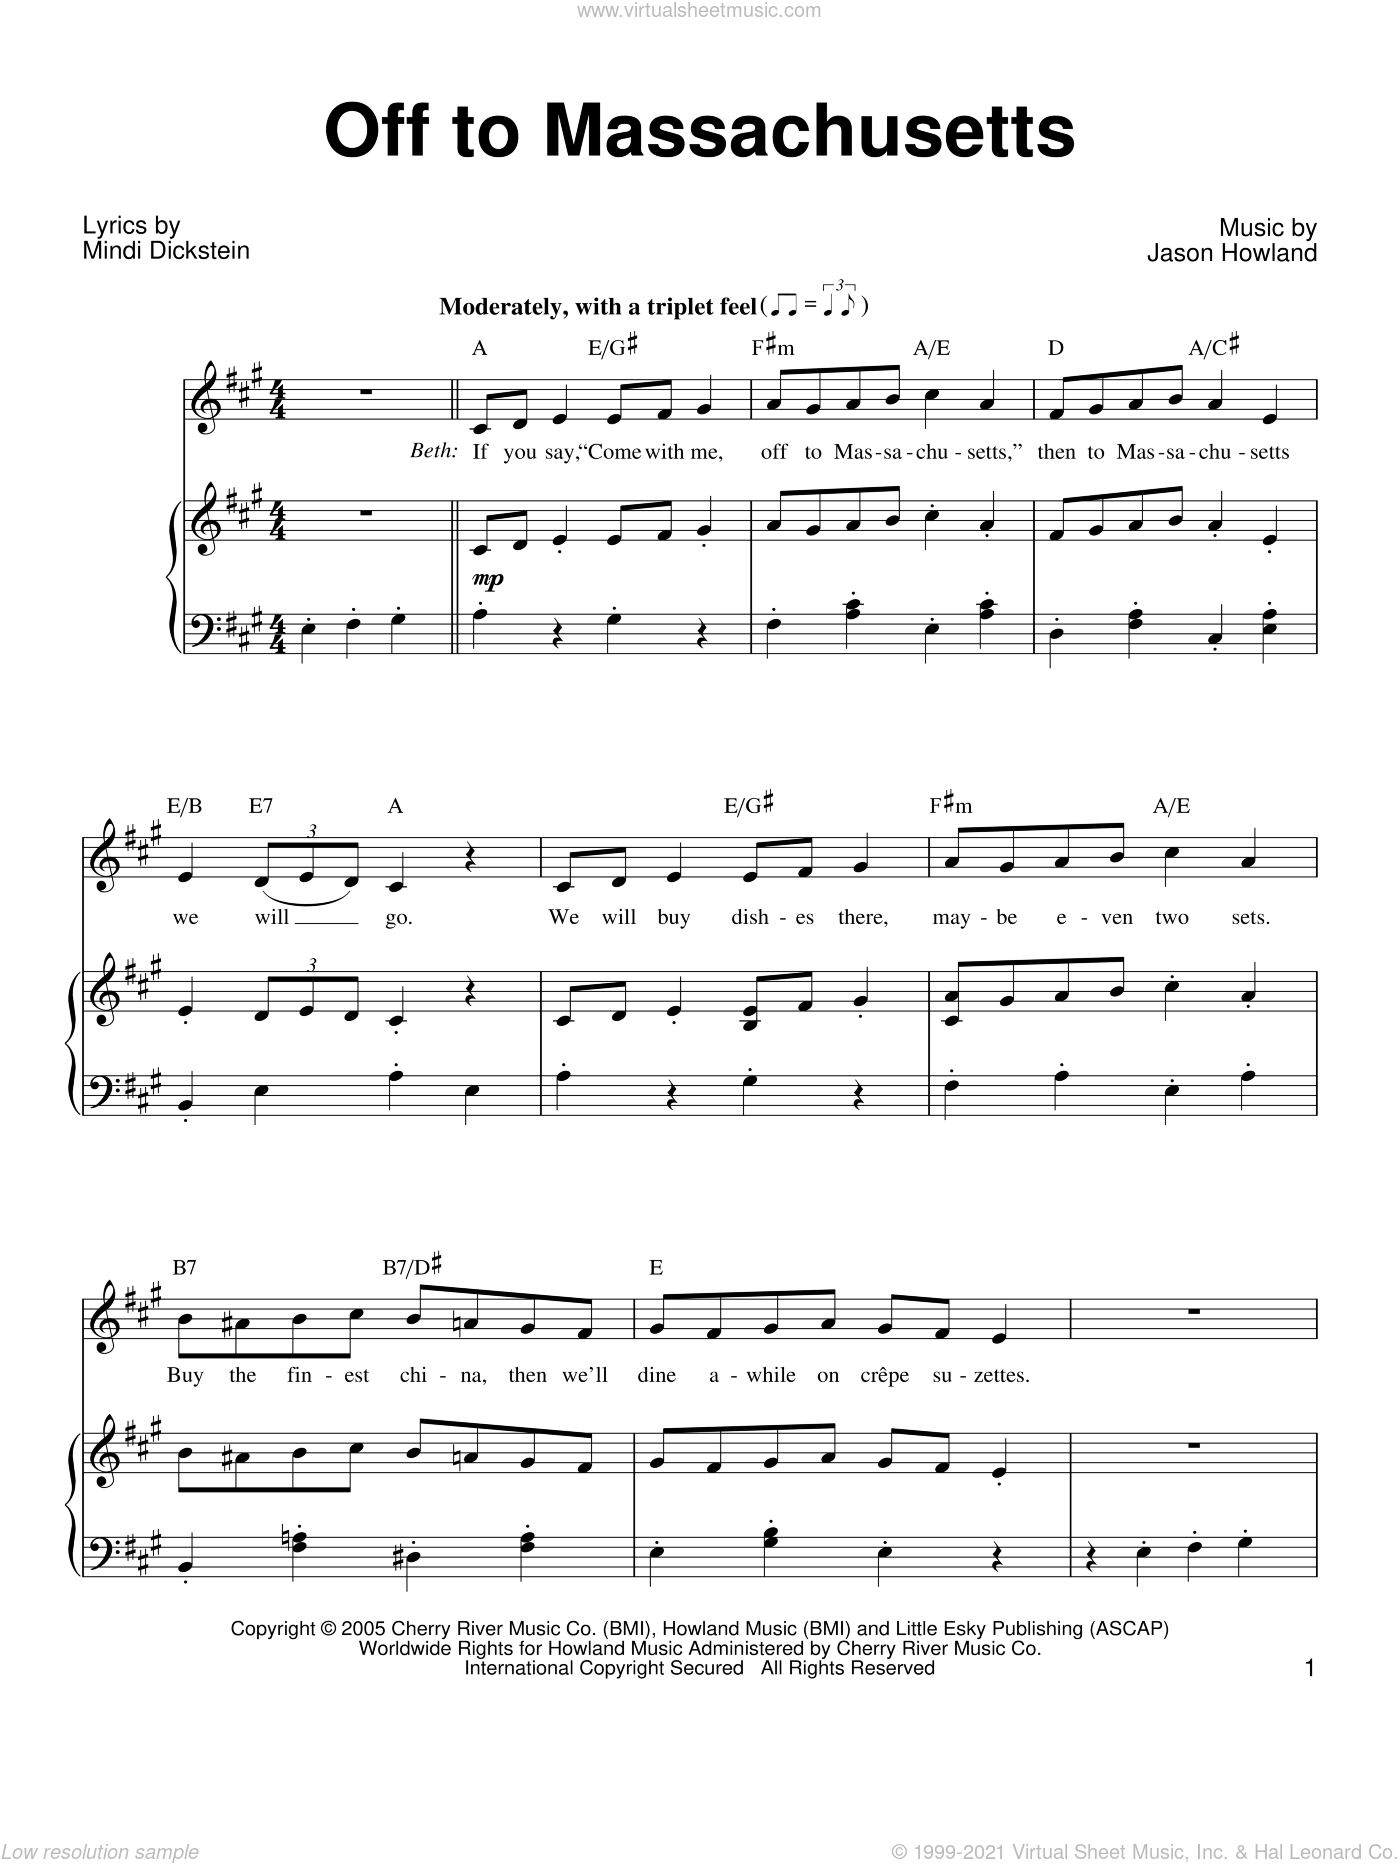 Off To Massachusetts sheet music for voice, piano or guitar by Jason Howland